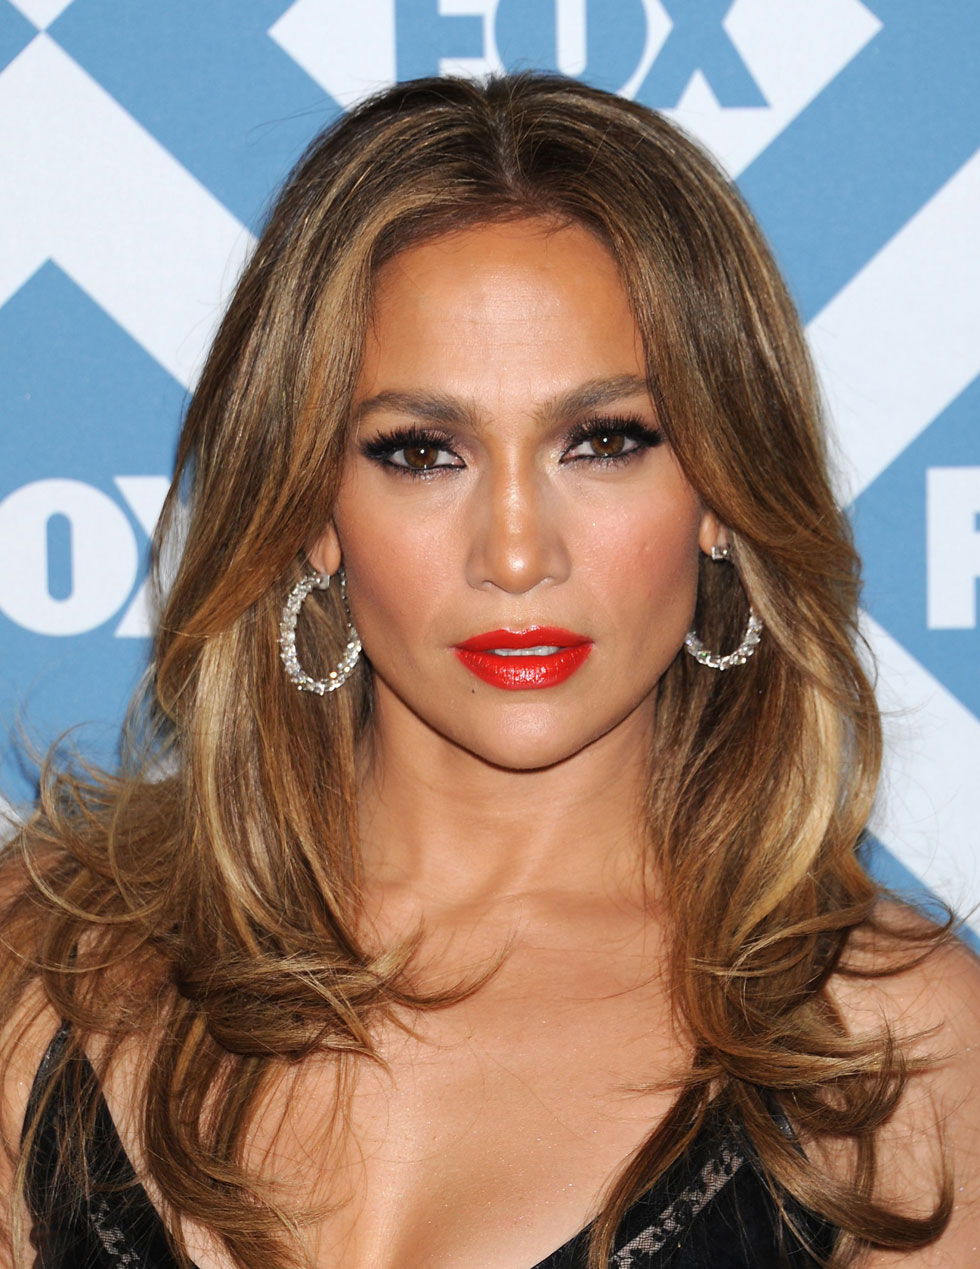 Jennifer-lopez-FOX-All-Star-2014-Winter-TCA-Party-2.jpg